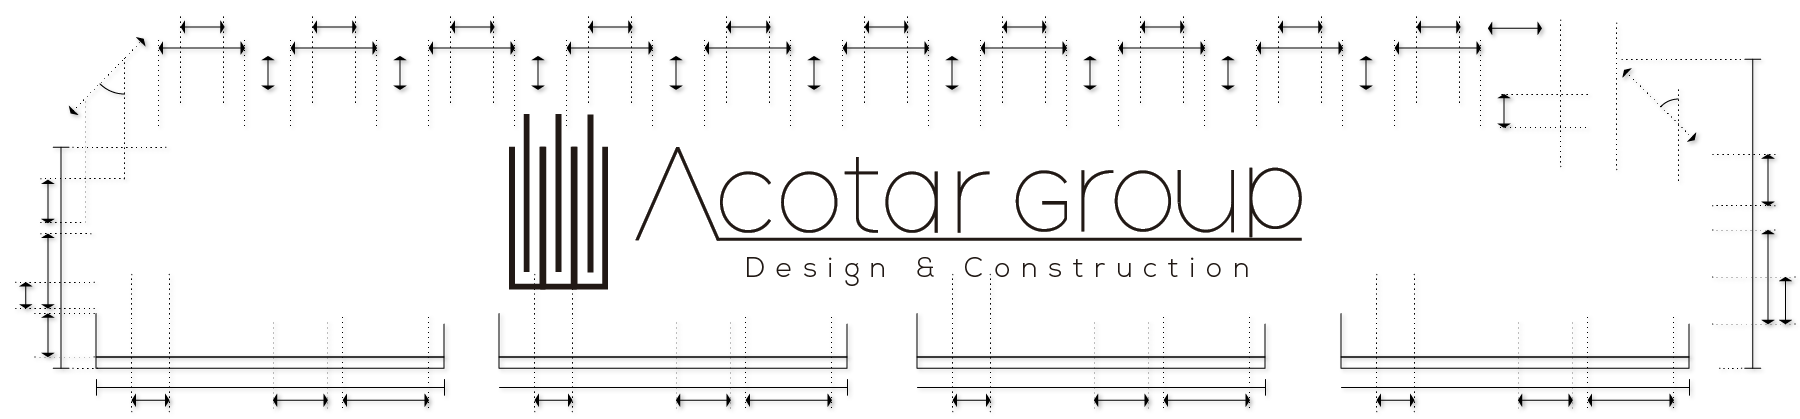 Logo Firma - Acotar Group